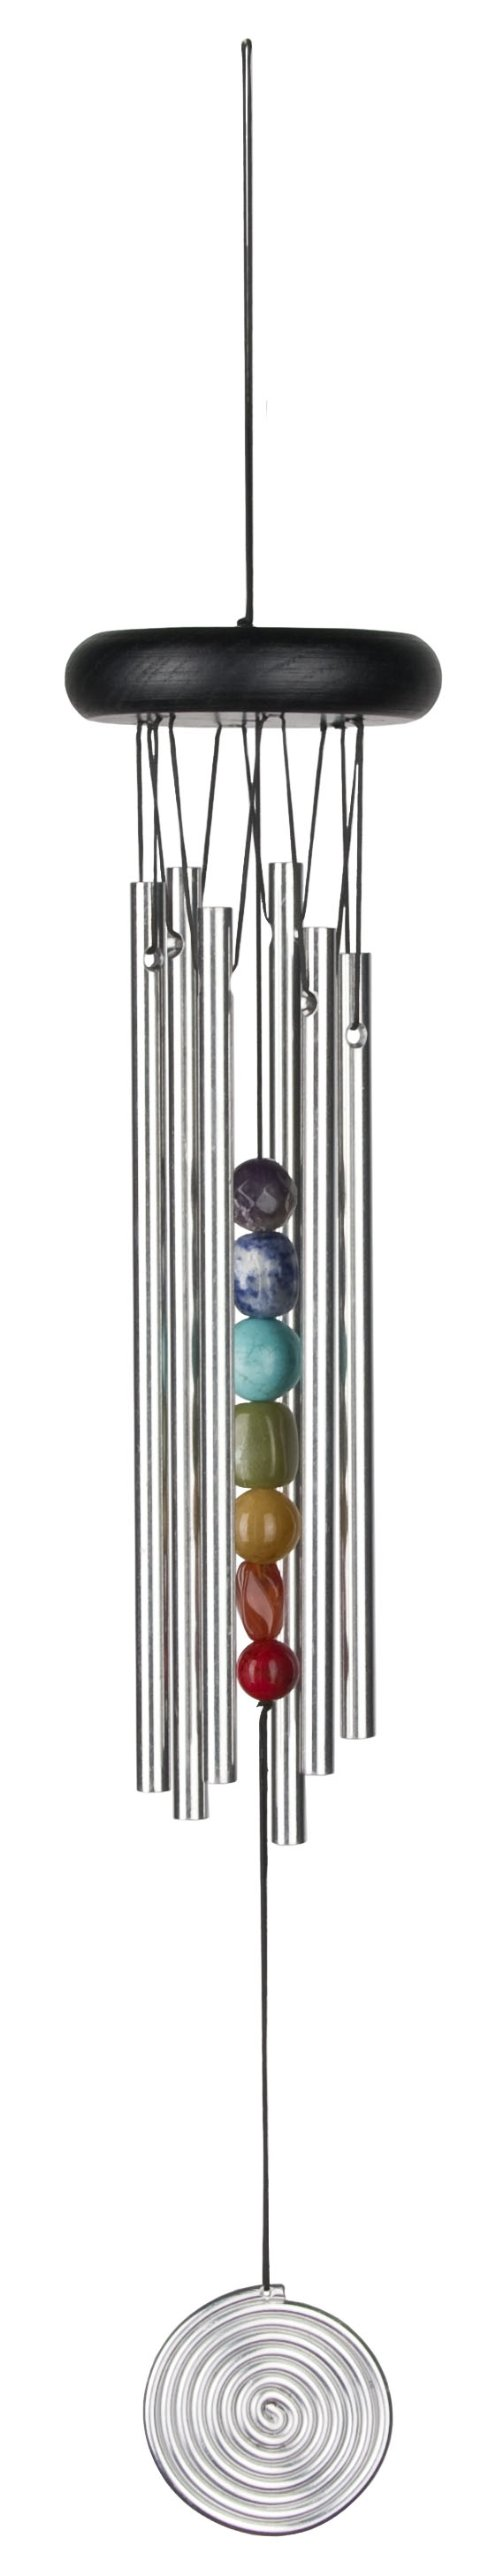 Woodstock Medium Chakra Chime, Seven Stones- Eastern Energies Collection